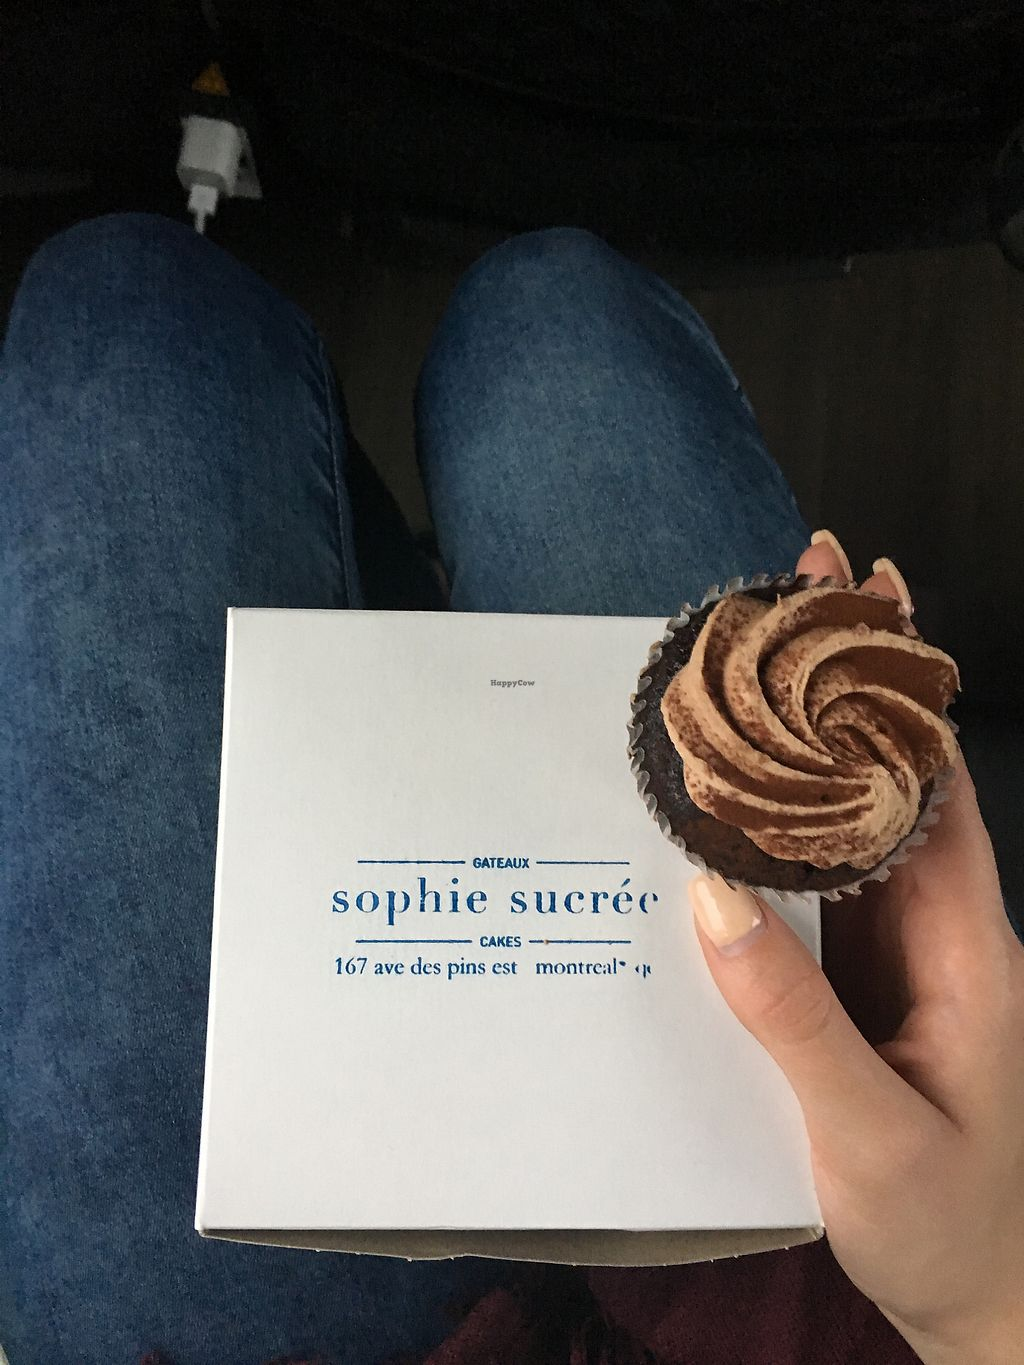 """Photo of Sophie Sucree  by <a href=""""/members/profile/MathildeRobichaud"""">MathildeRobichaud</a> <br/>Cupcake au chocolat <br/> December 5, 2017  - <a href='/contact/abuse/image/39859/332610'>Report</a>"""